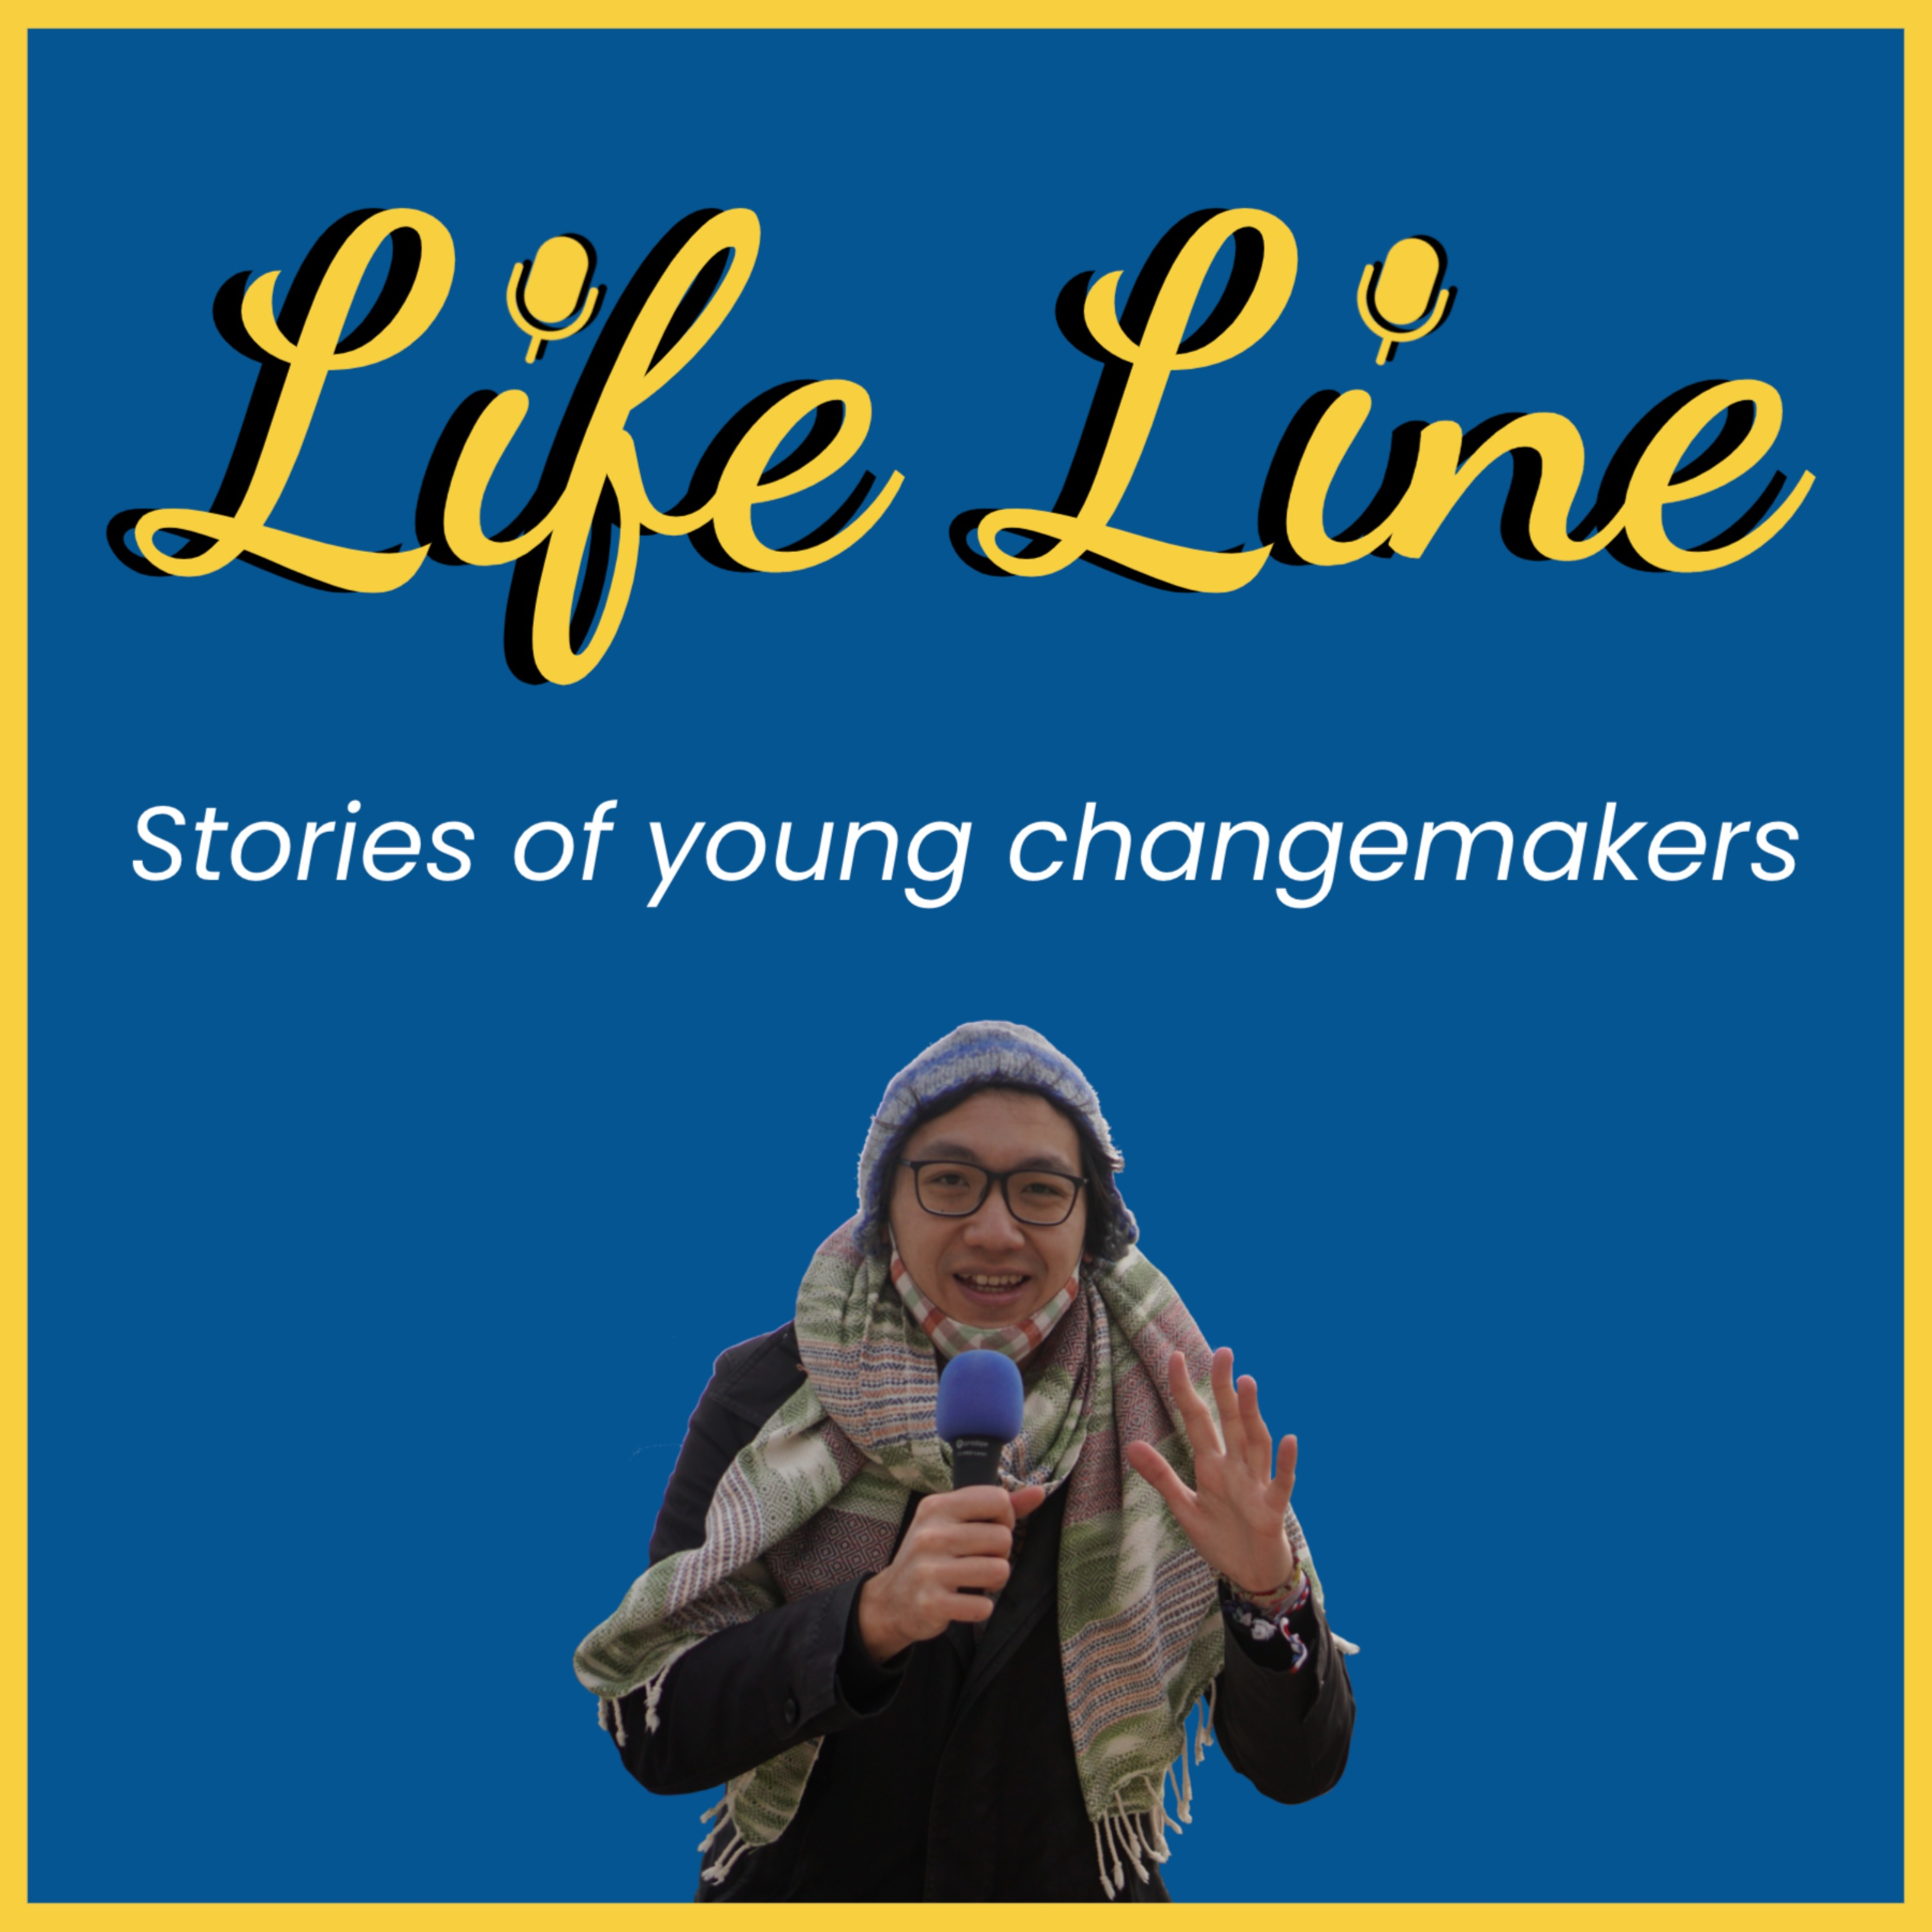 Life Line - Stories of Changemakers for the SDGs